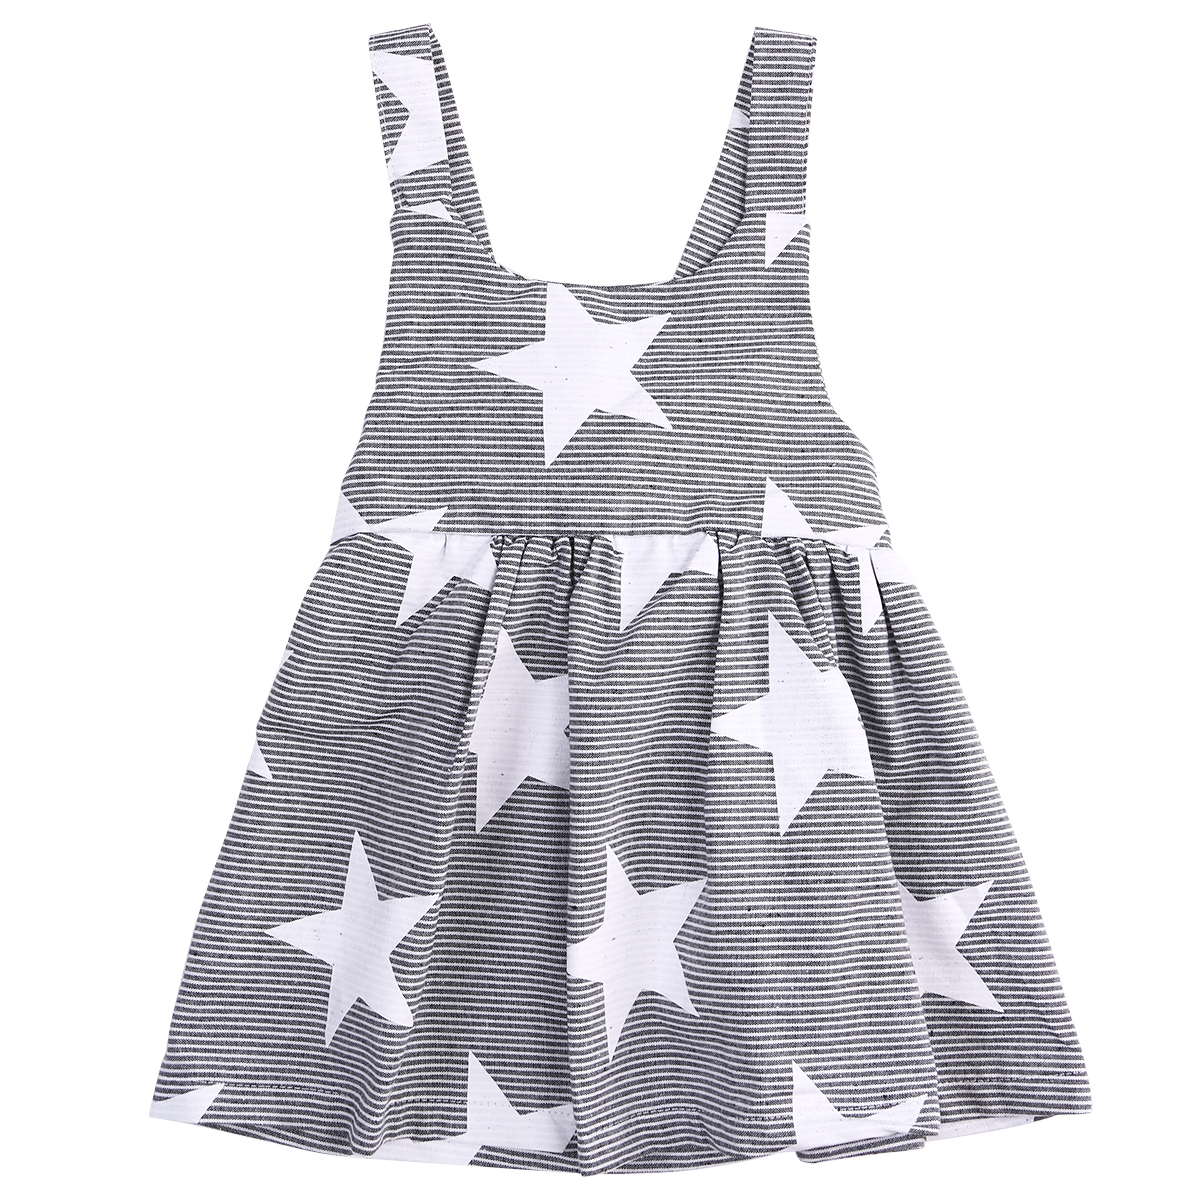 2017 Summer Toddler Kids Baby Girl Star Dress Sleeveless Backless Halter Clothes Children Girls Princess Party Dress 2-7Y fashion kids girls toddler baby lace princess party dress clothes 2 7y